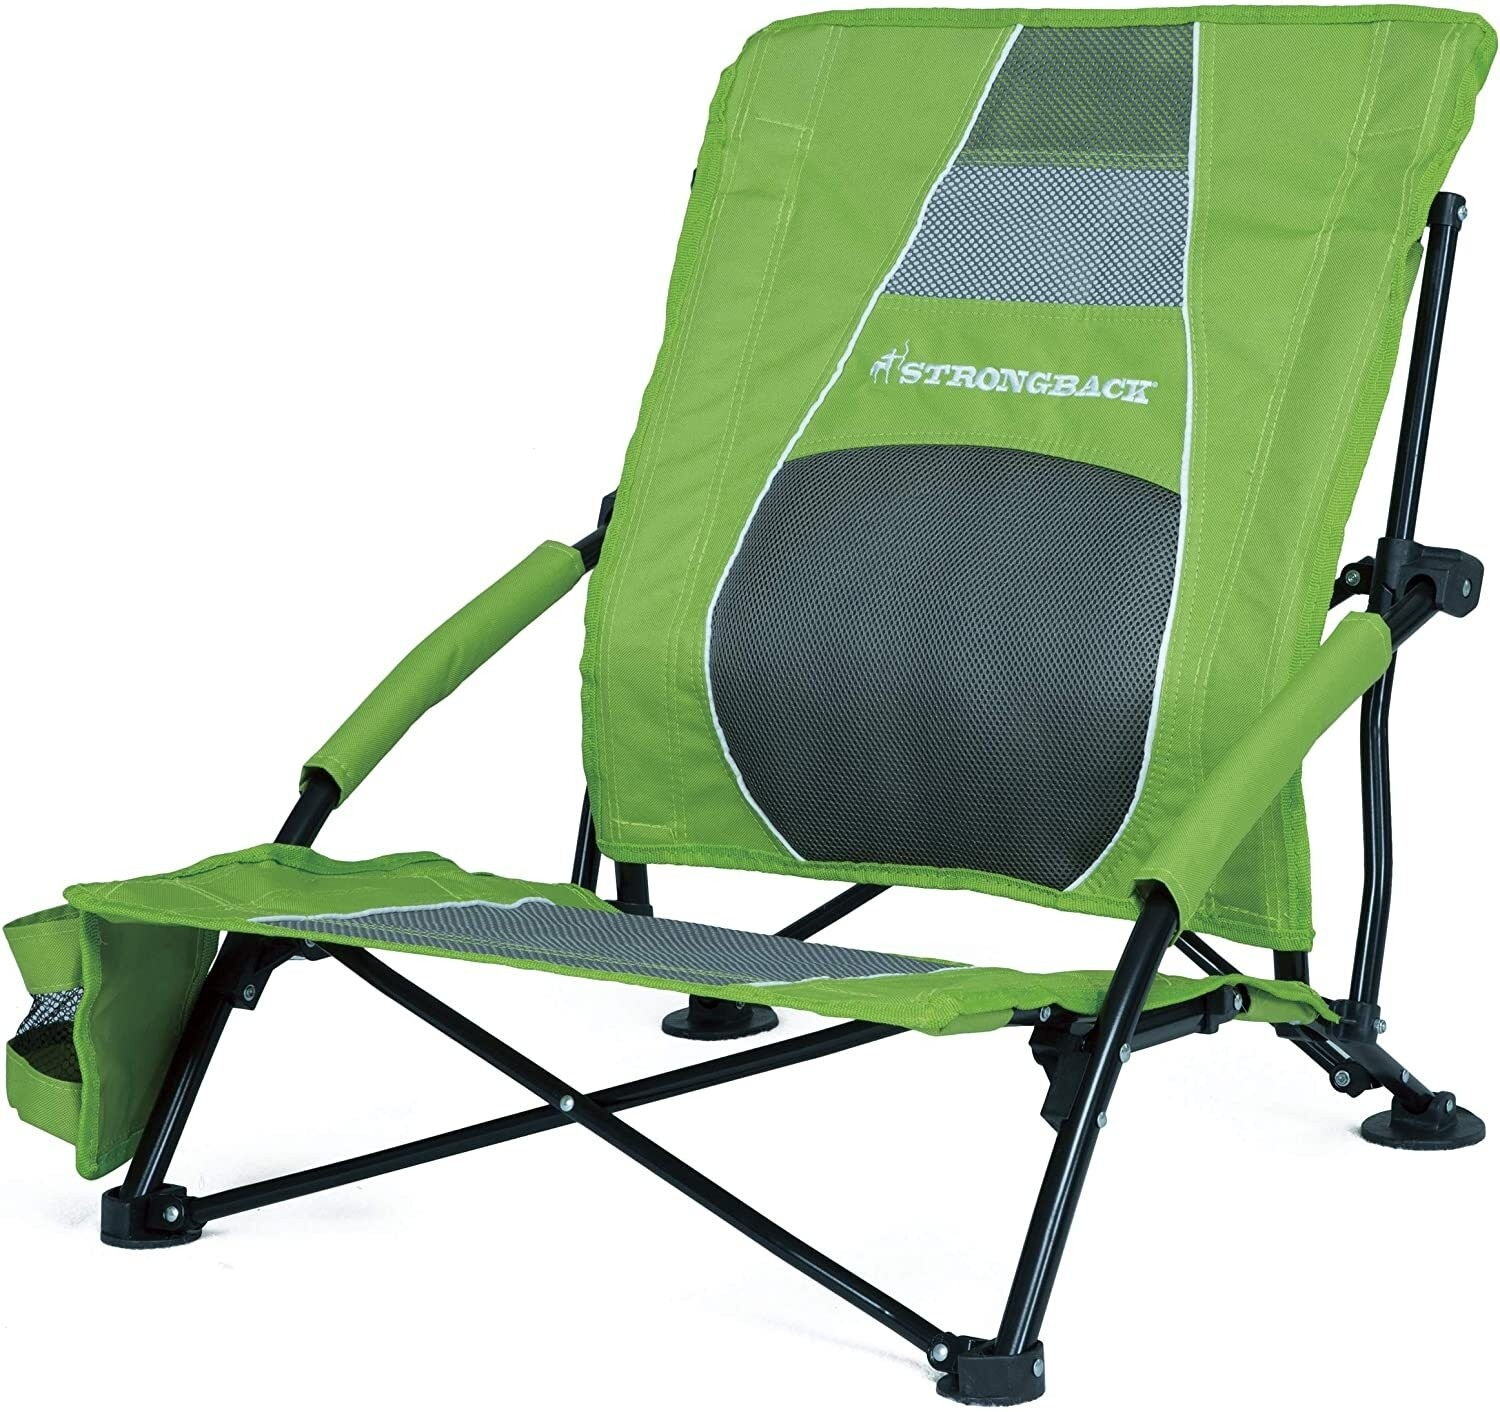 Beach Chair Features That Allow You To Relax In Style